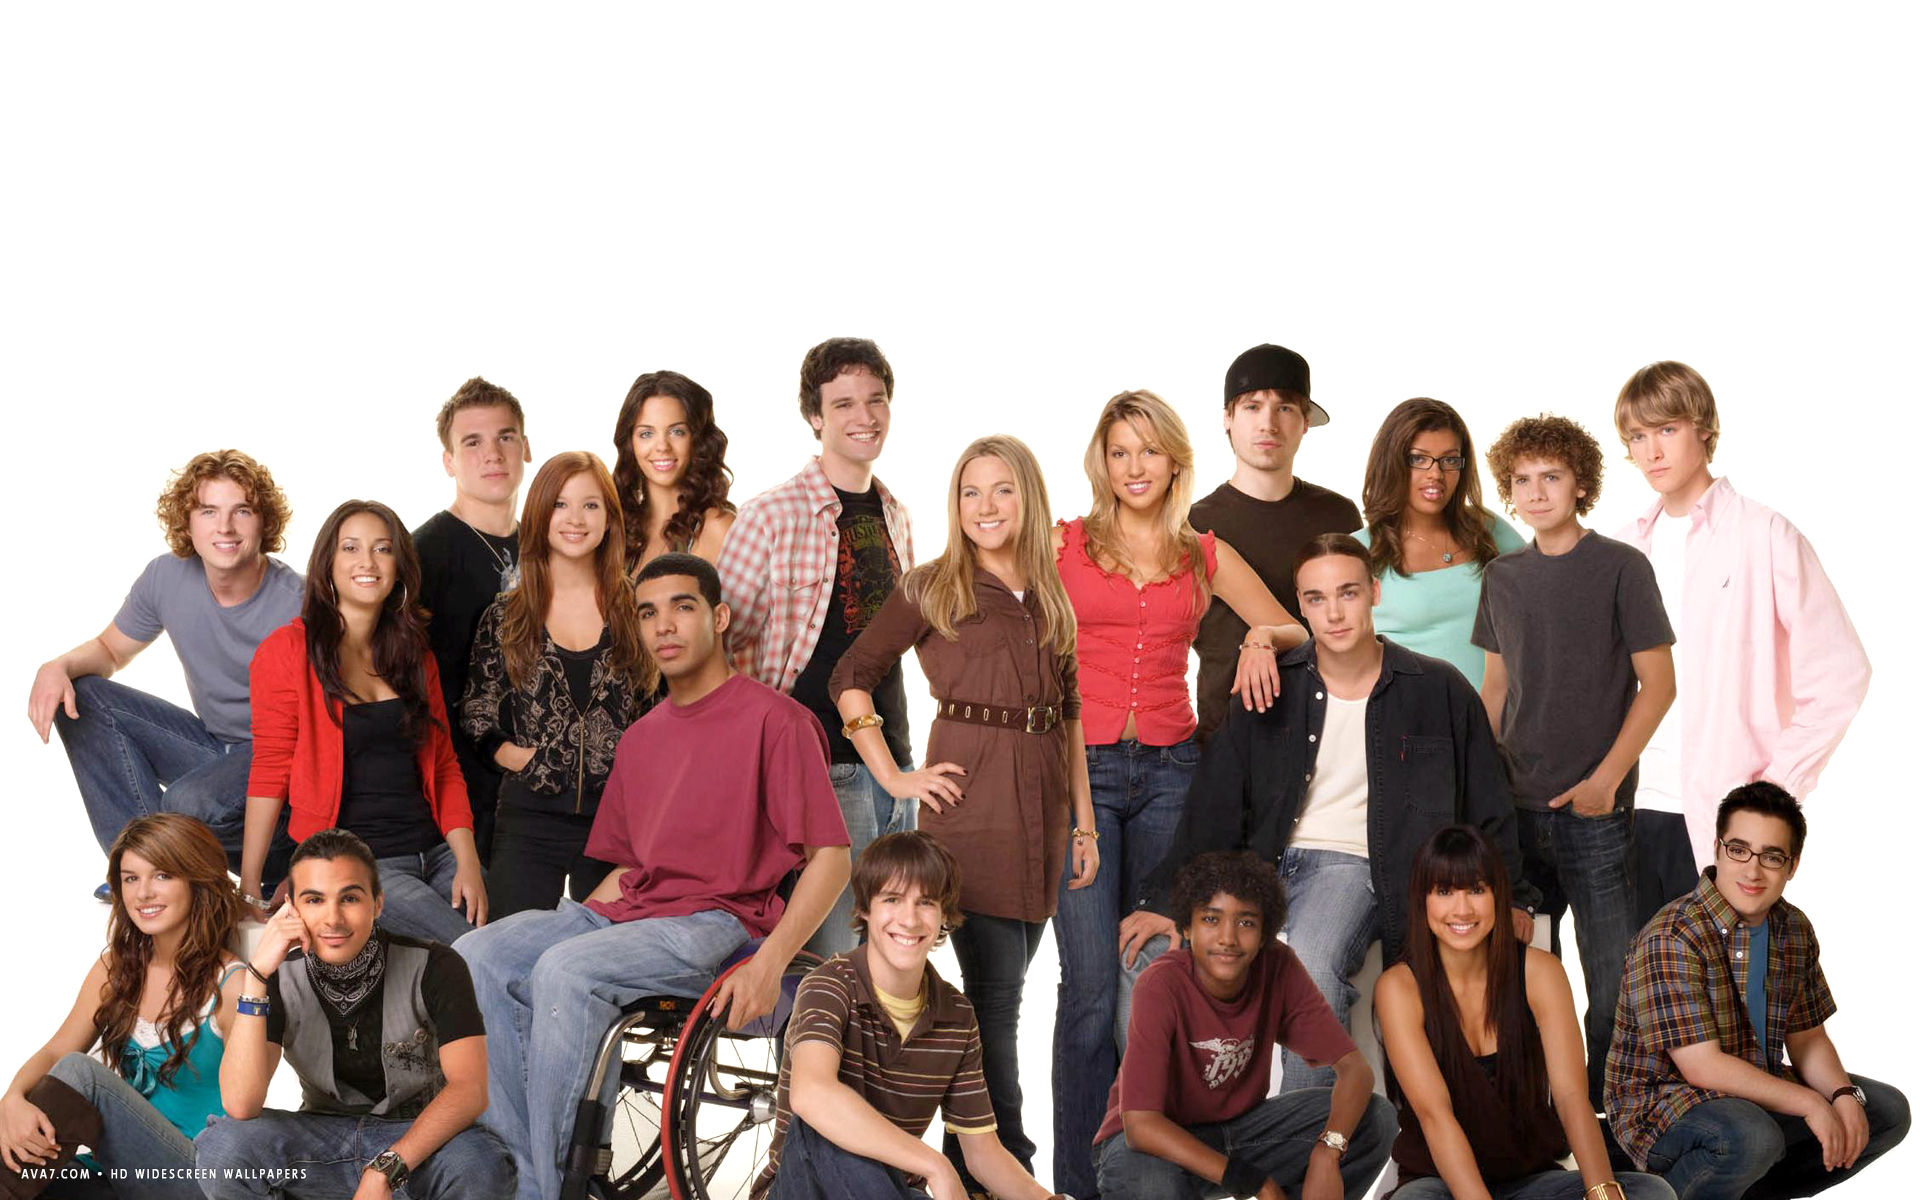 degrassi tv series show hd widescreen wallpaper